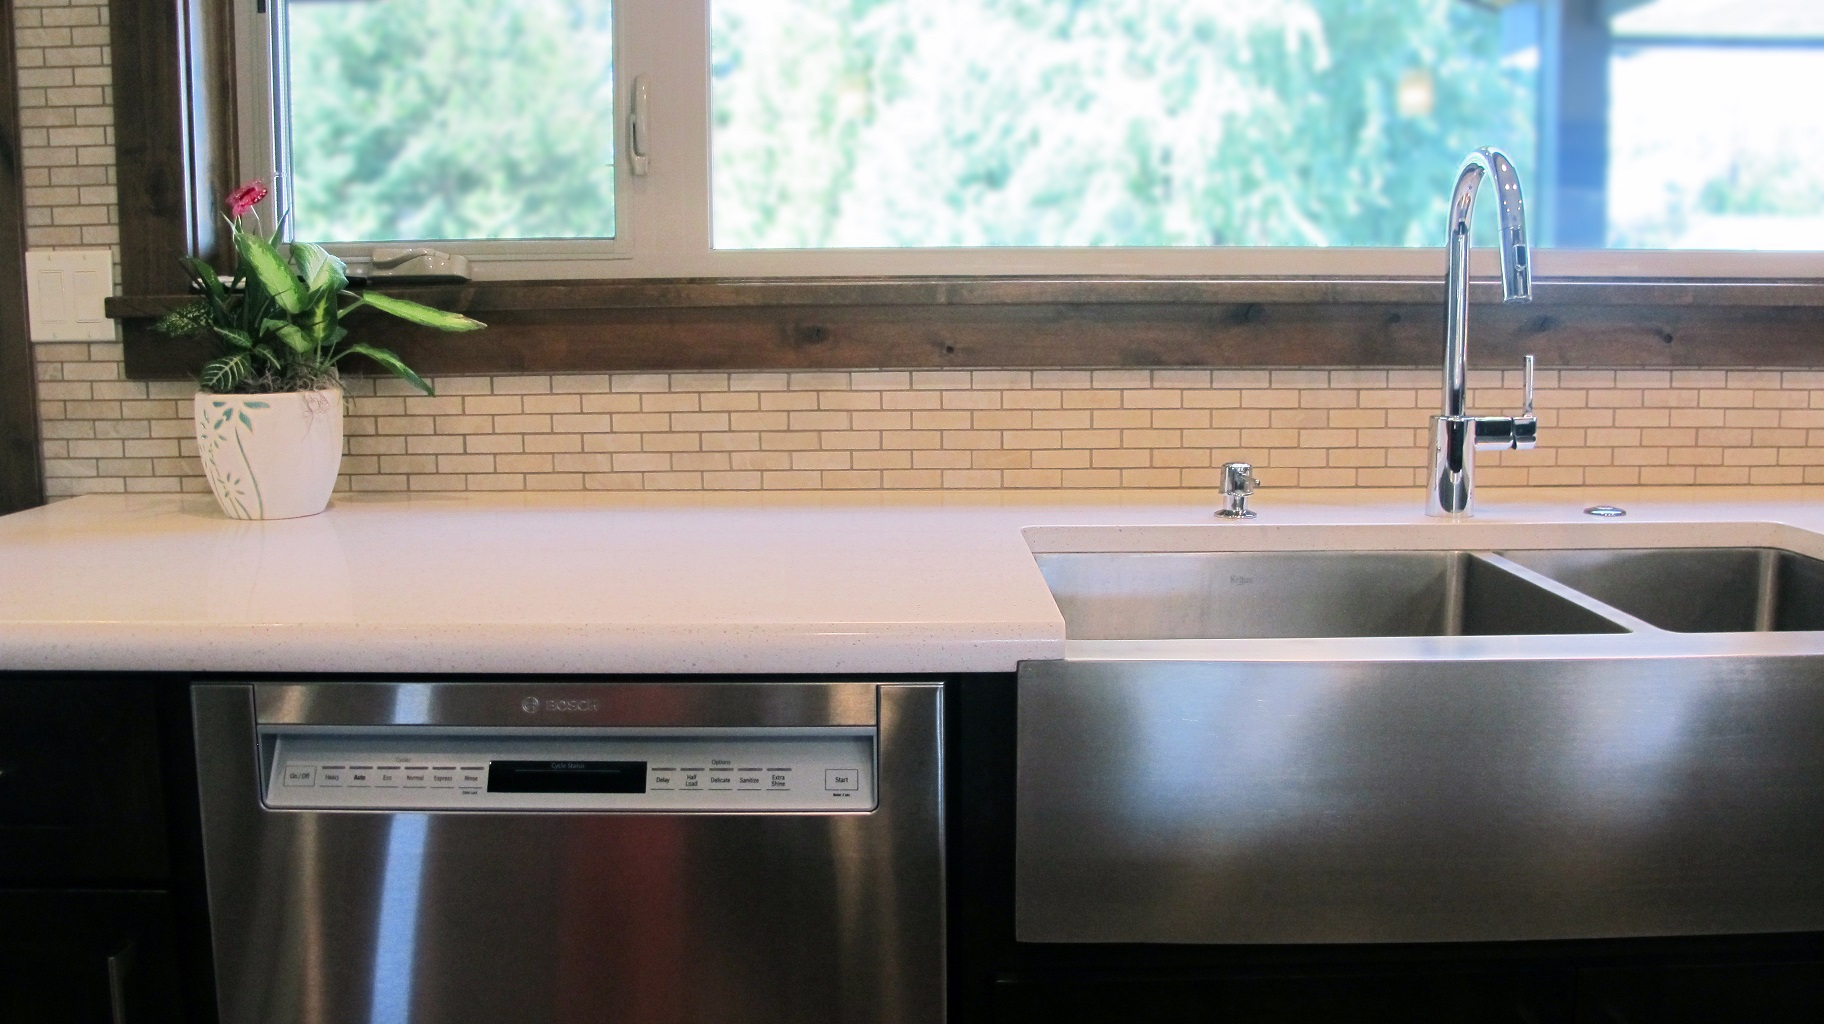 Lightweight Countertop Dishwasher : Light white quartz countertop stainless steel appliances apron sink ...